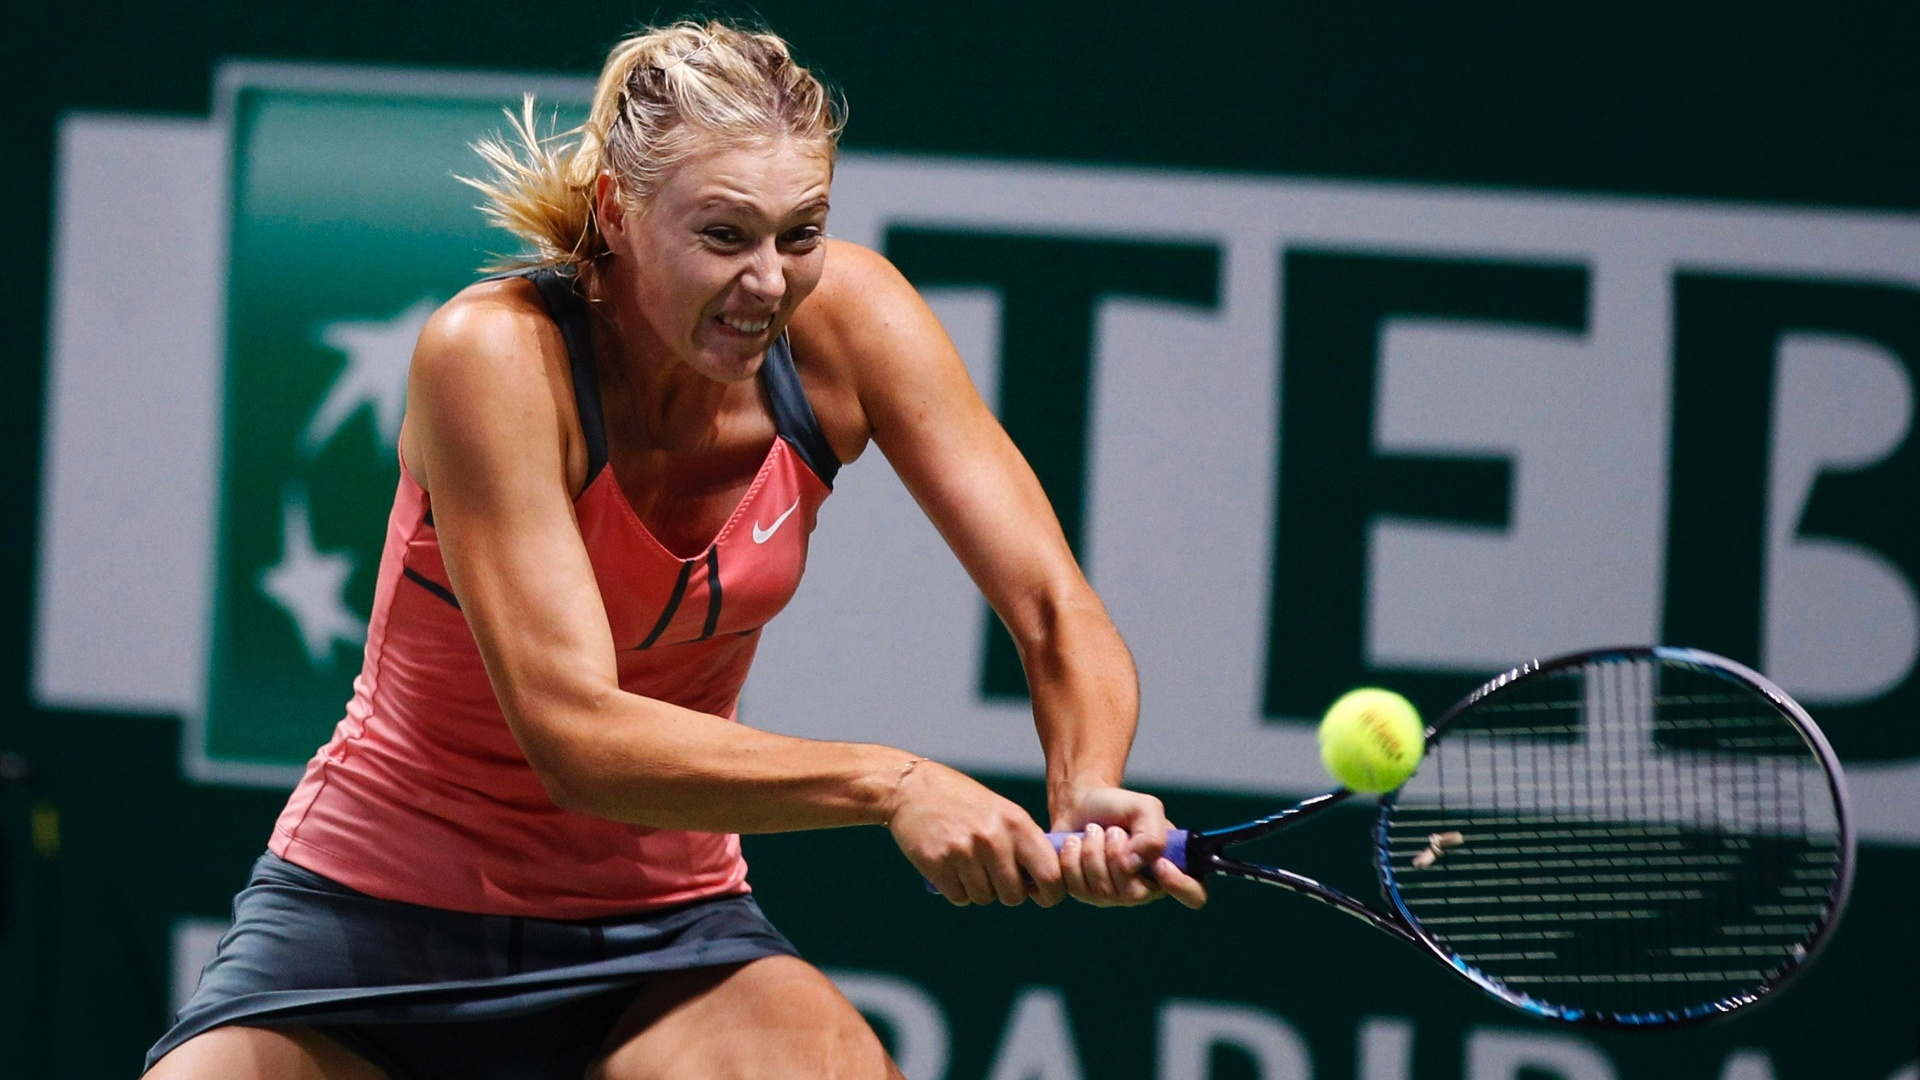 Sharapova ficou com o vice-campeonato no ltimo torneio da temporada